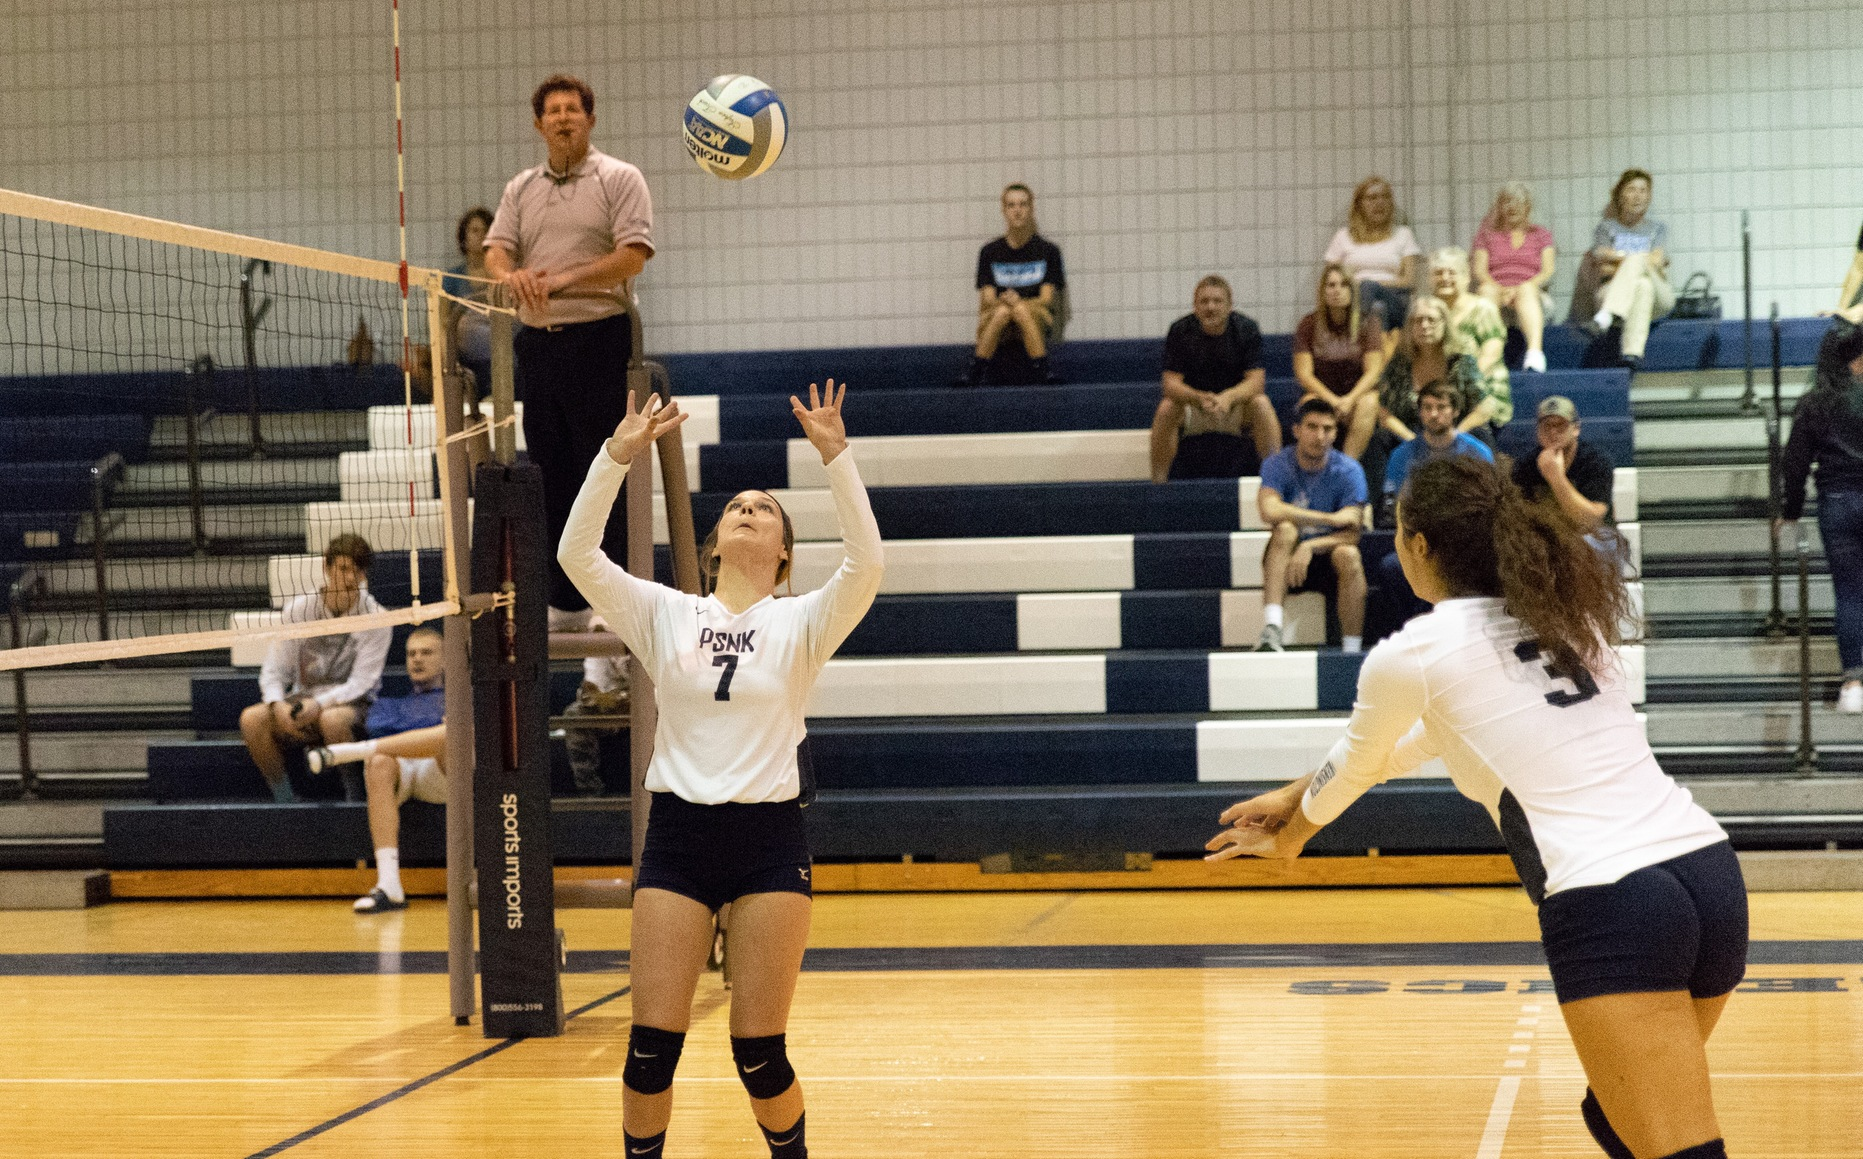 New Kensington falls to Beaver in PSUAC volleyball action